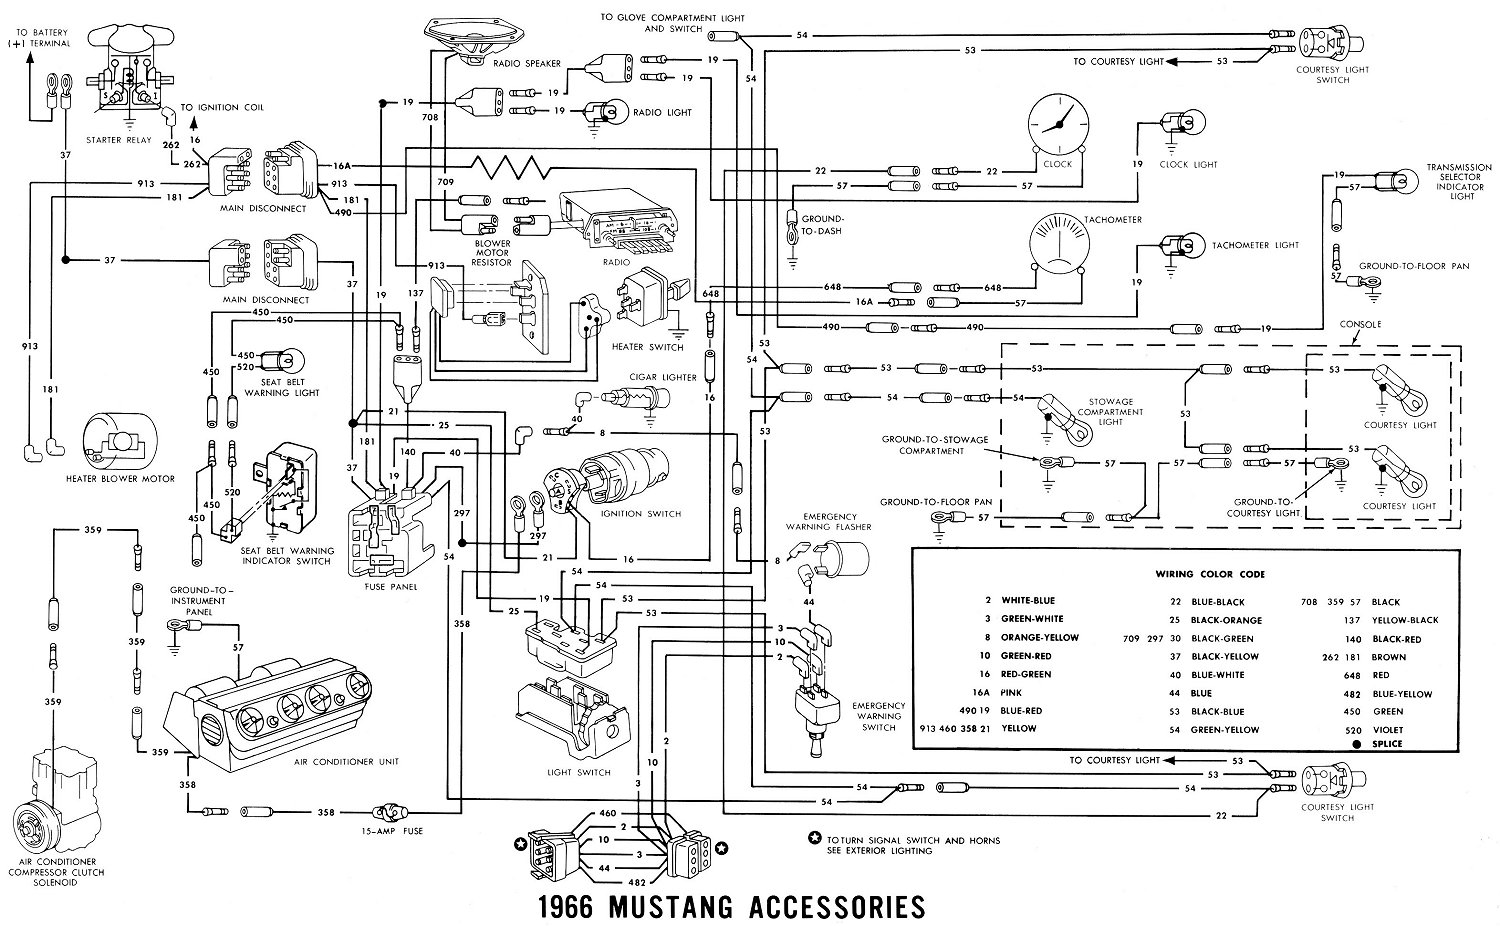 66acces1 1966 mustang wiring diagrams average joe restoration mitsubishi l300 wiring system diagram at edmiracle.co